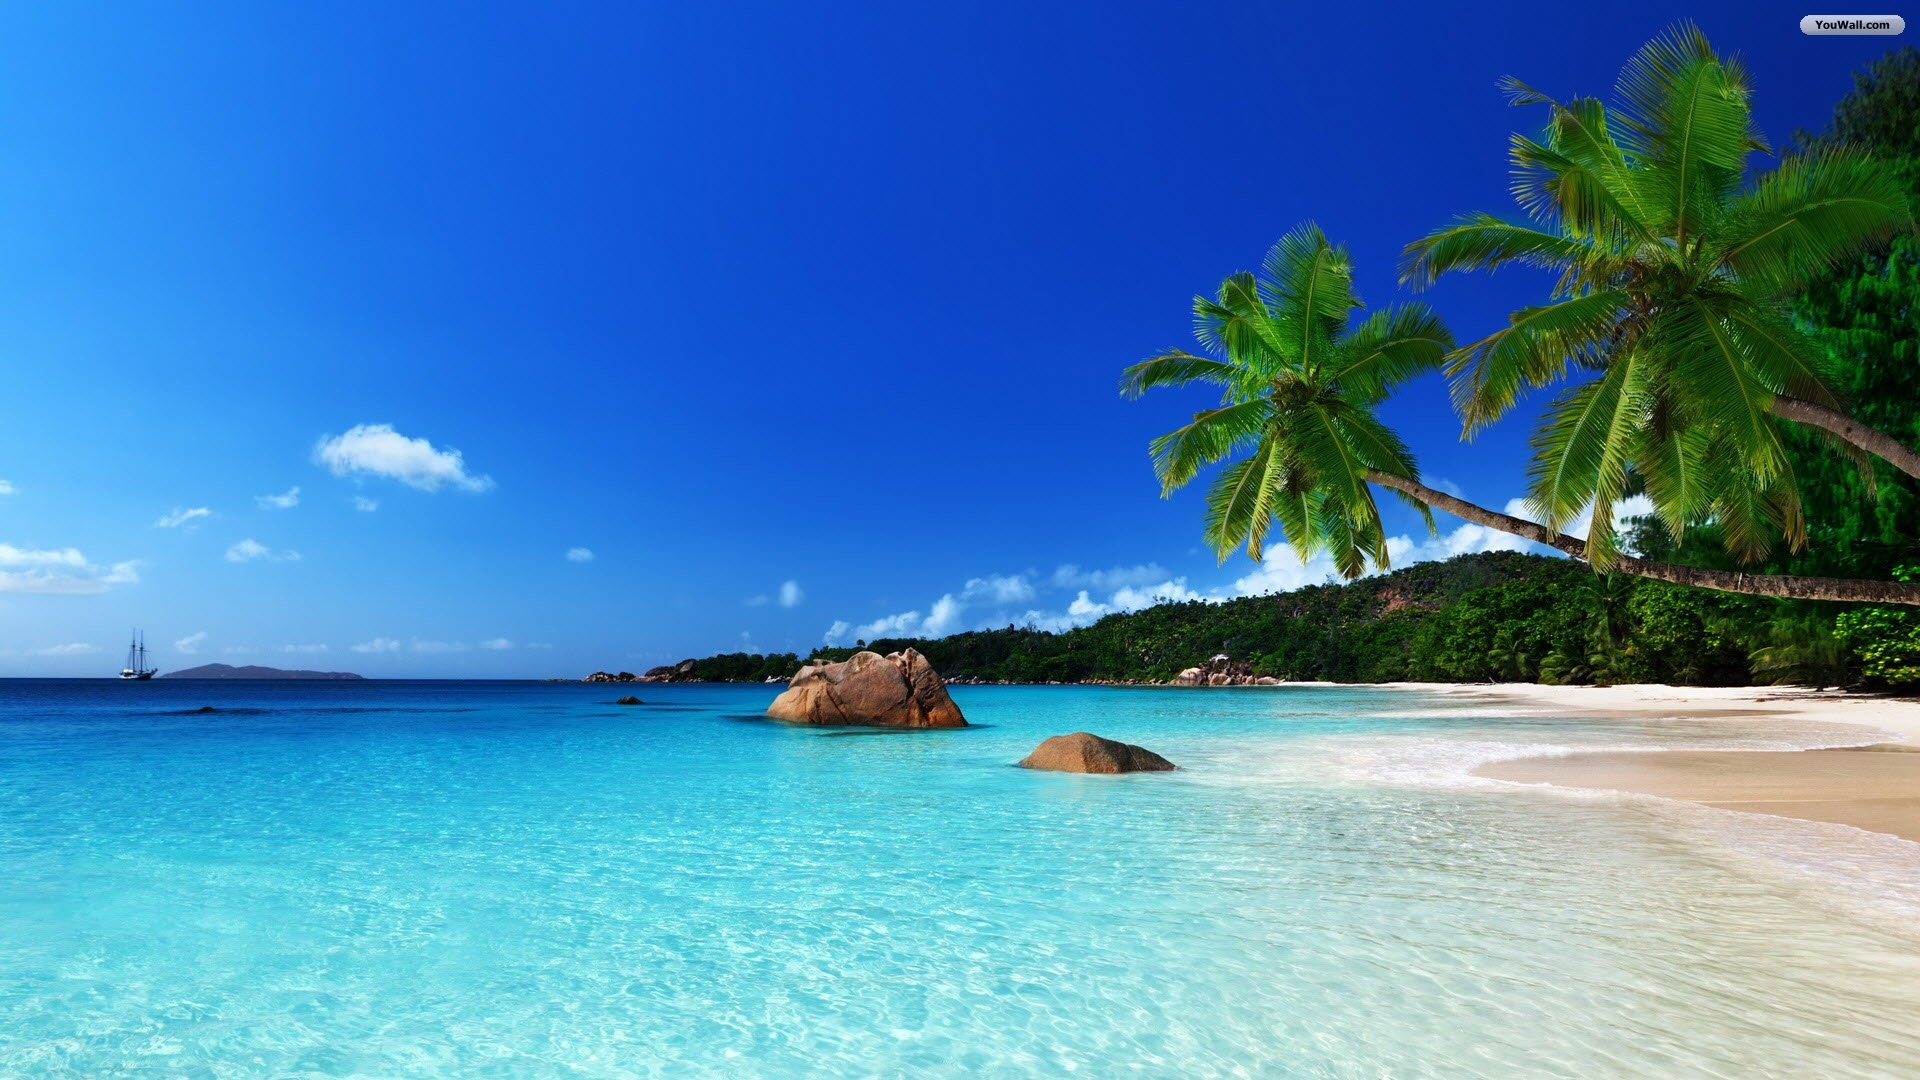 Beach Desktop Wallpapers 53 Images